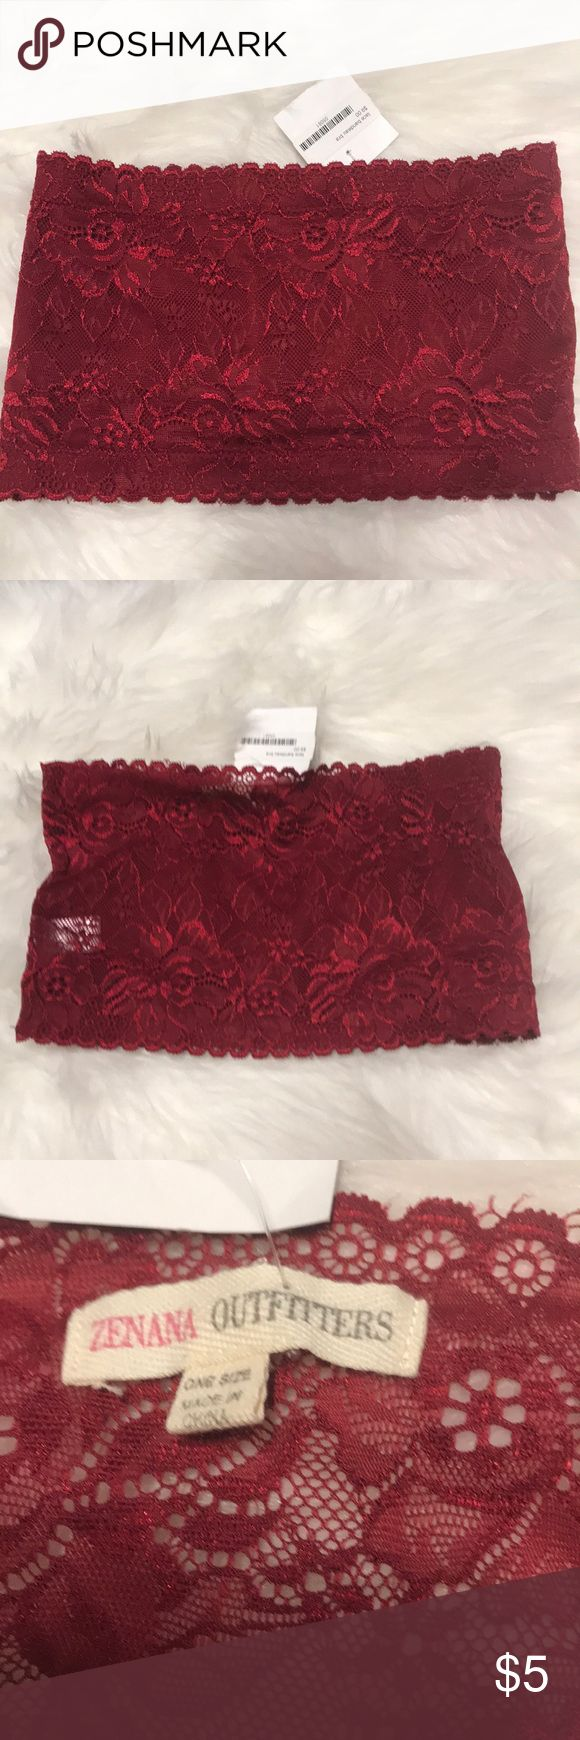 Burgundy Lace Bandeau Bra New with tags! Never worn! Burgundy lace bandeau bra Zenana Outfitters Intimates & Sleepwear Bandeaus